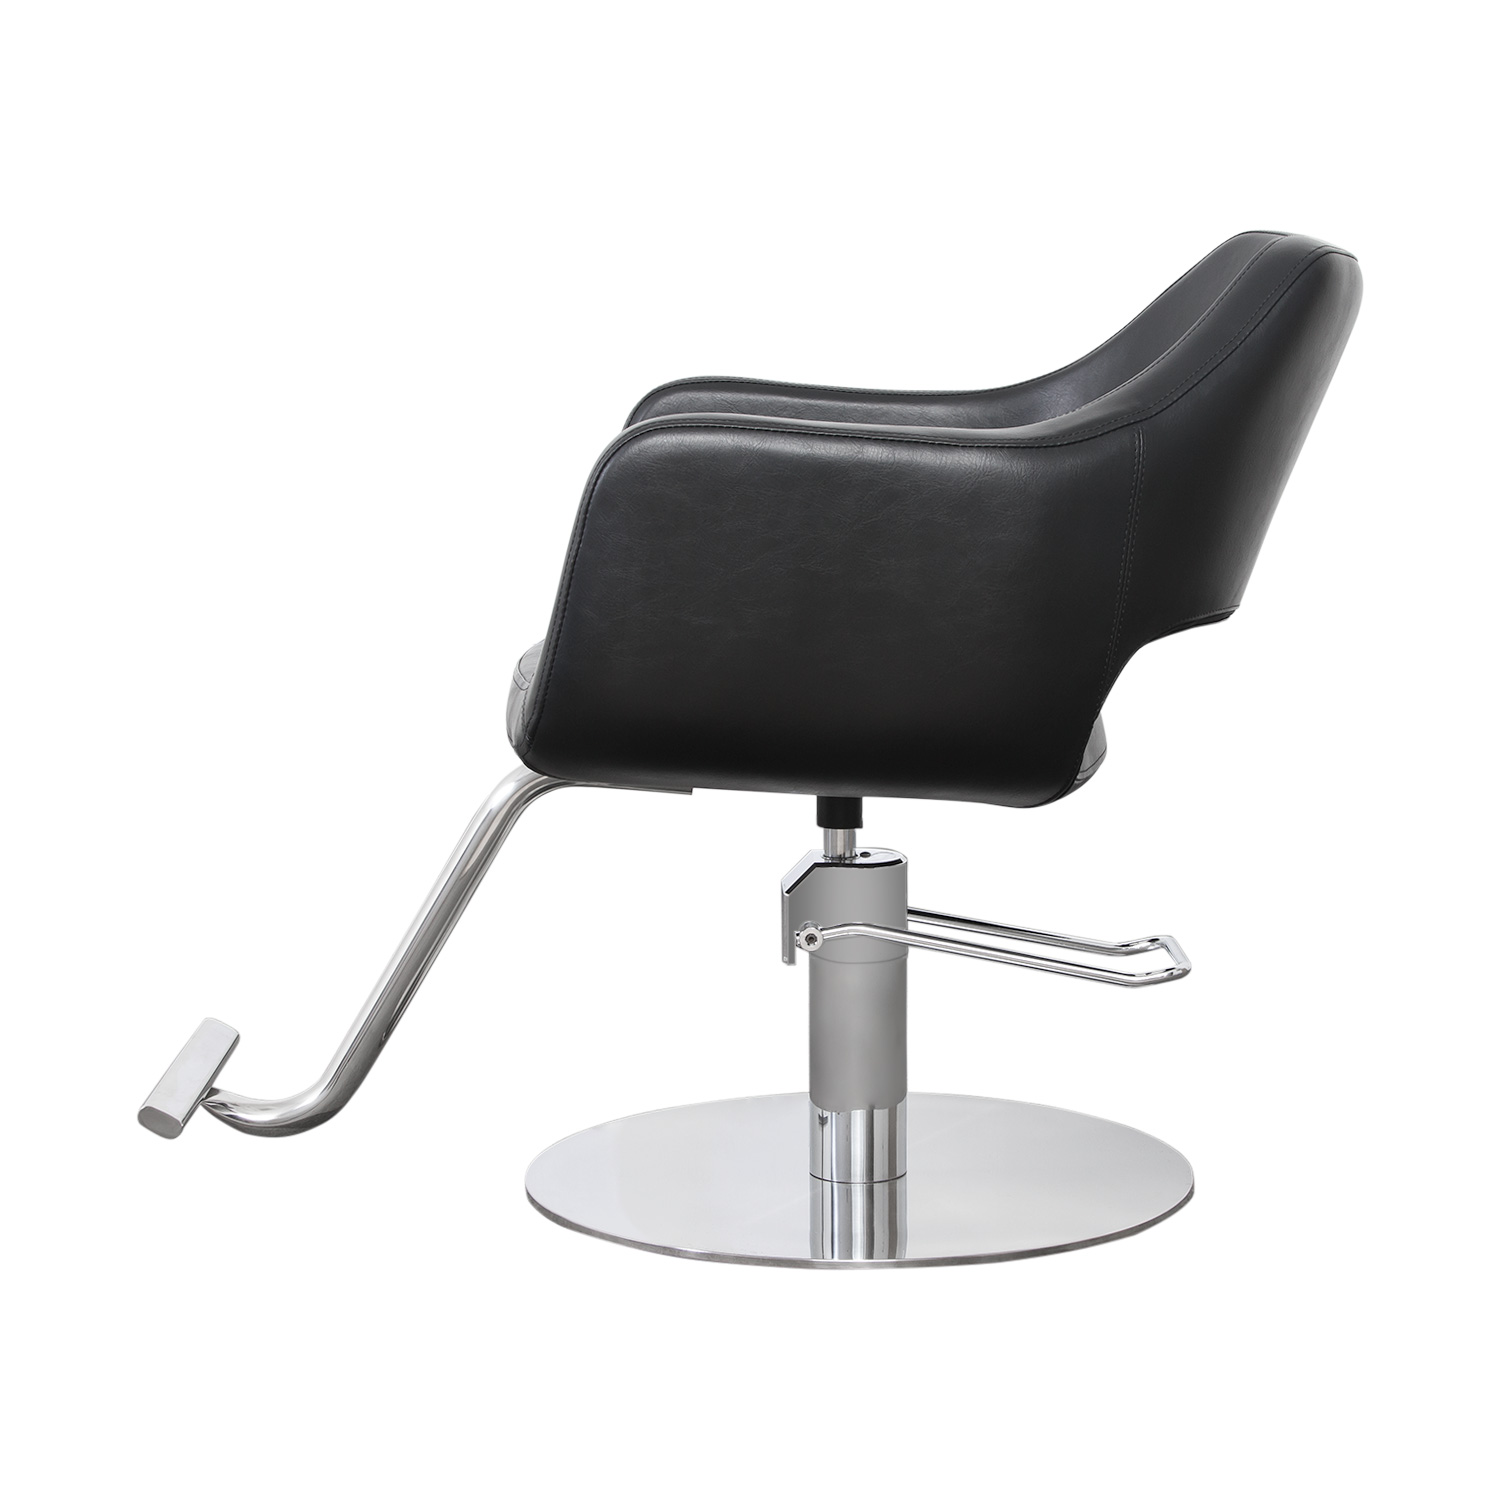 Novato Modern Beauty Shop Chair alternative product image 2